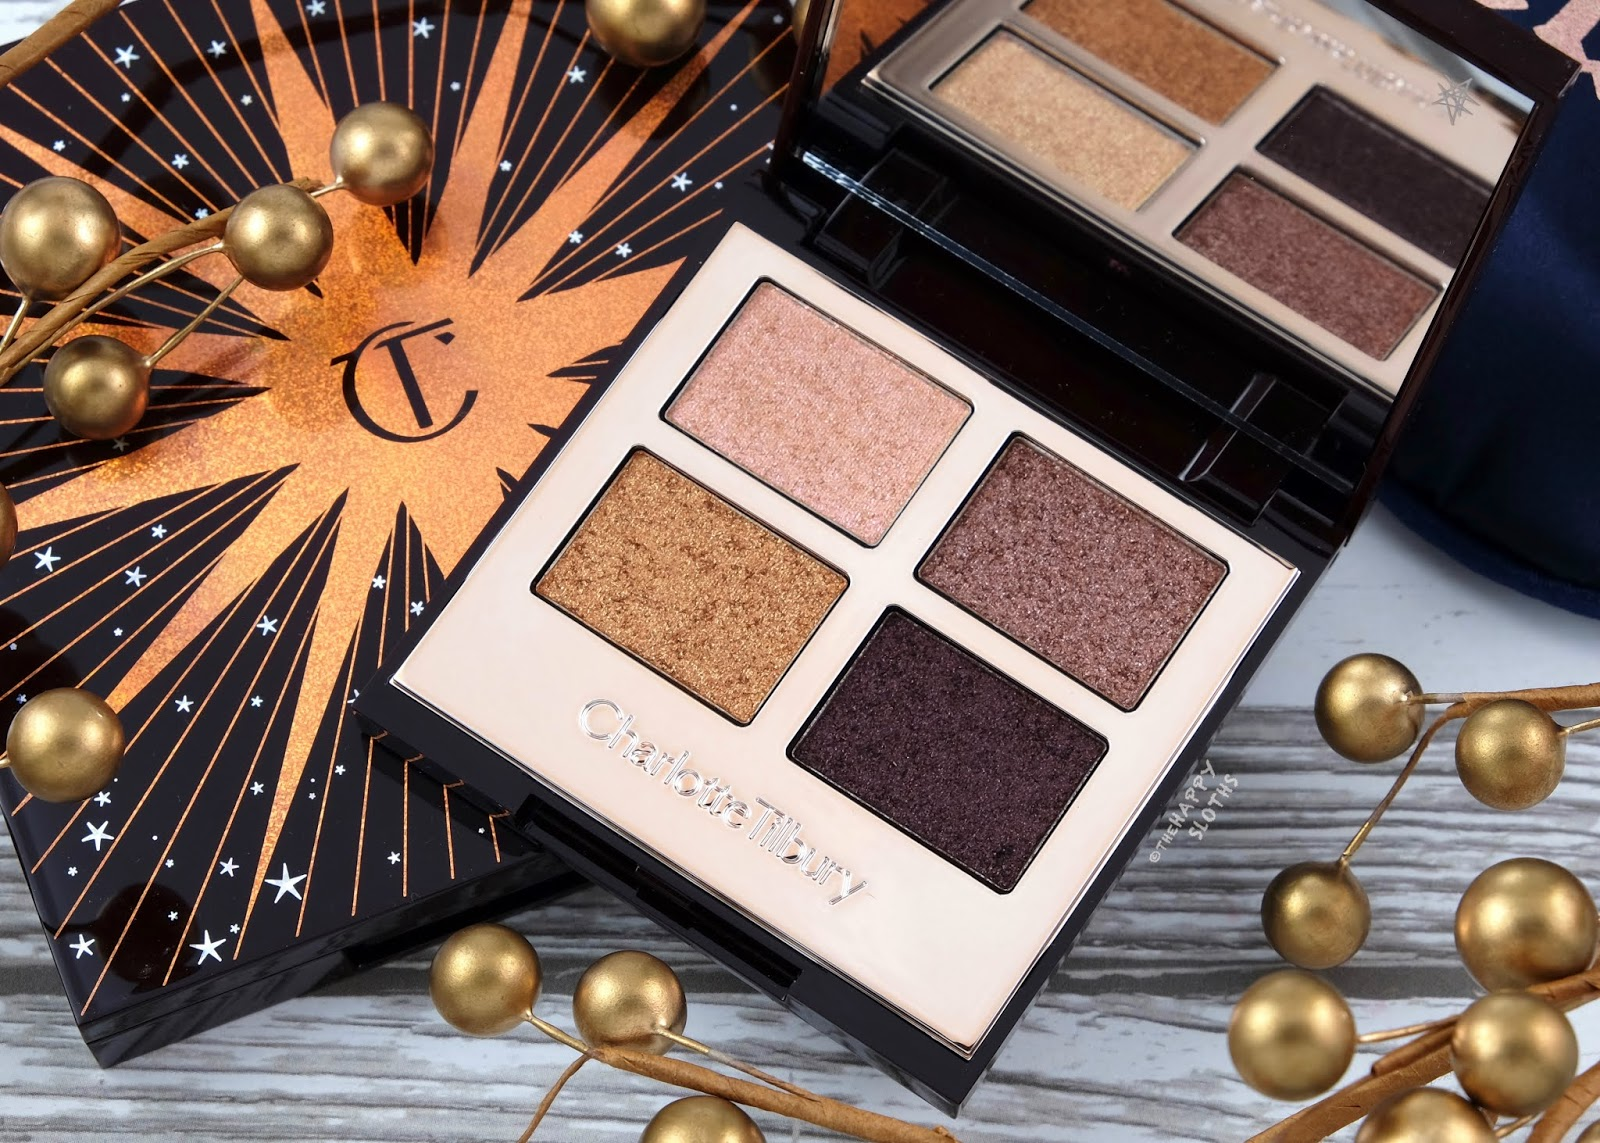 Charlotte Tilbury | Celestial Eyes Luxury Palette of Pops: Review and Swatches